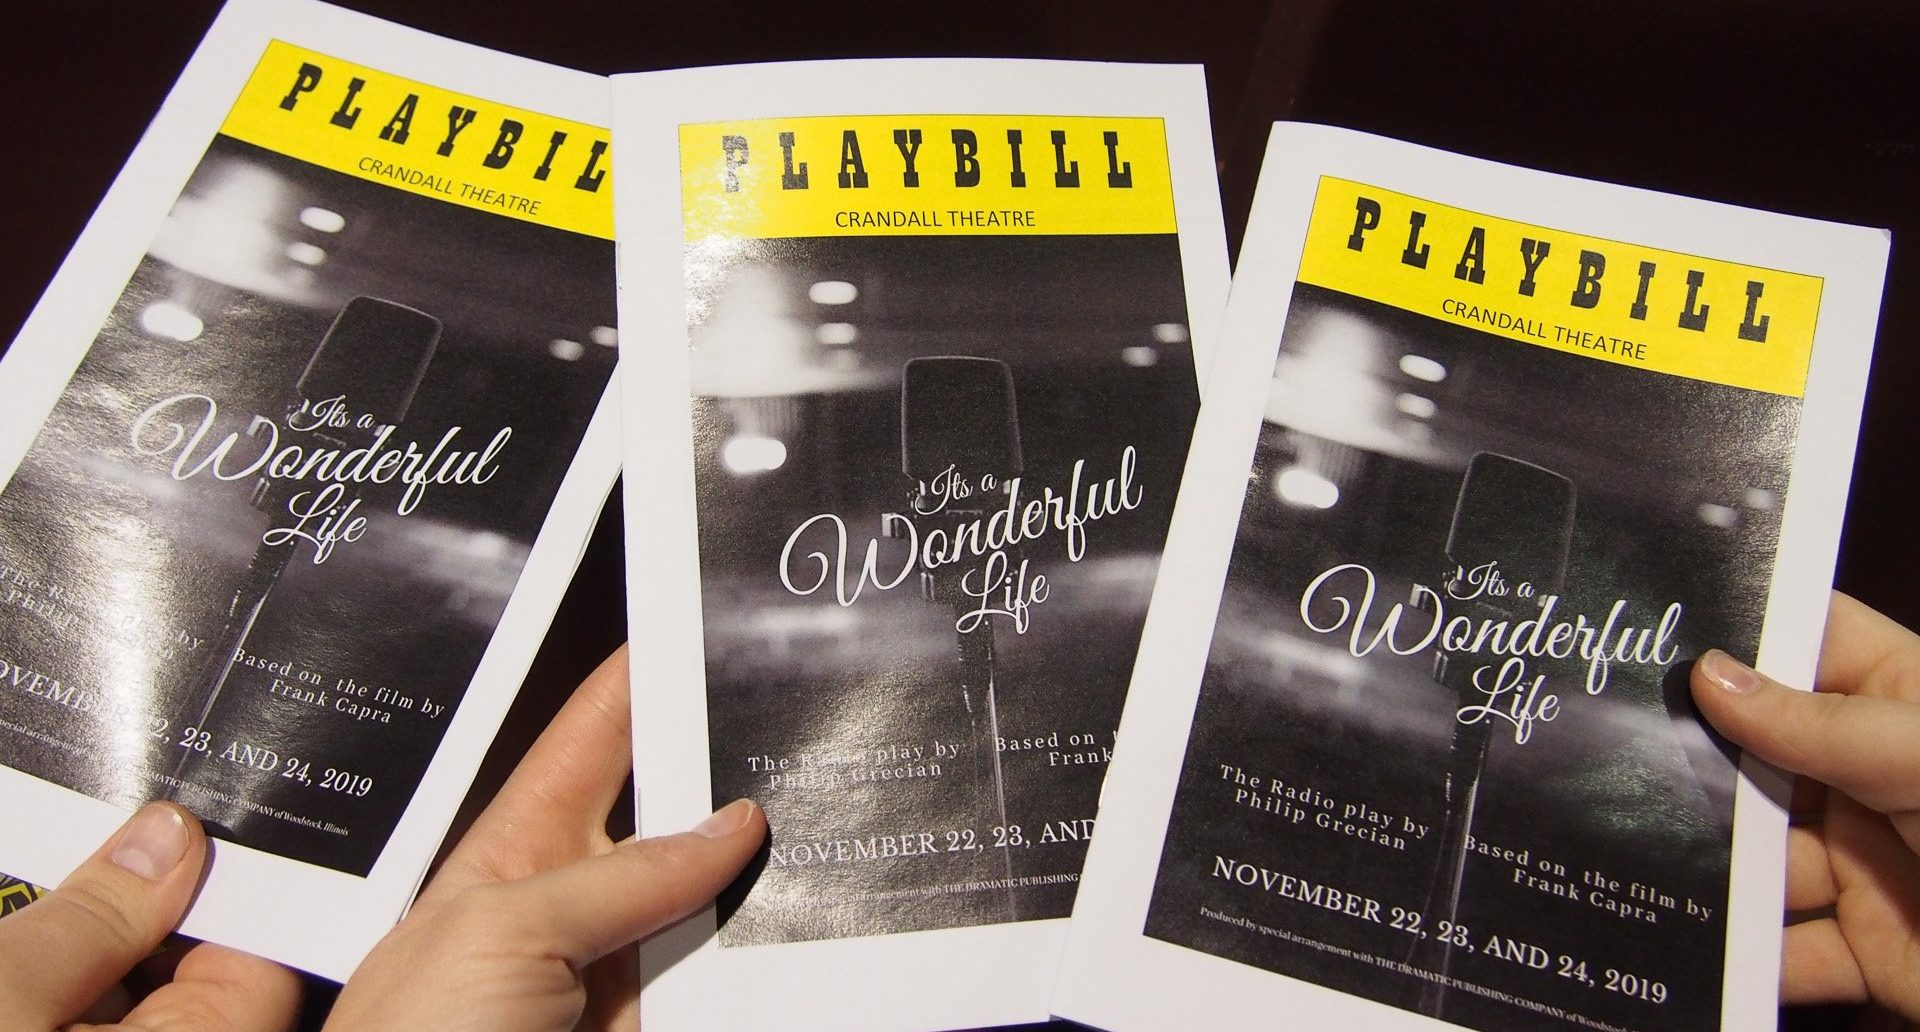 Playbills from Crandall Theatre